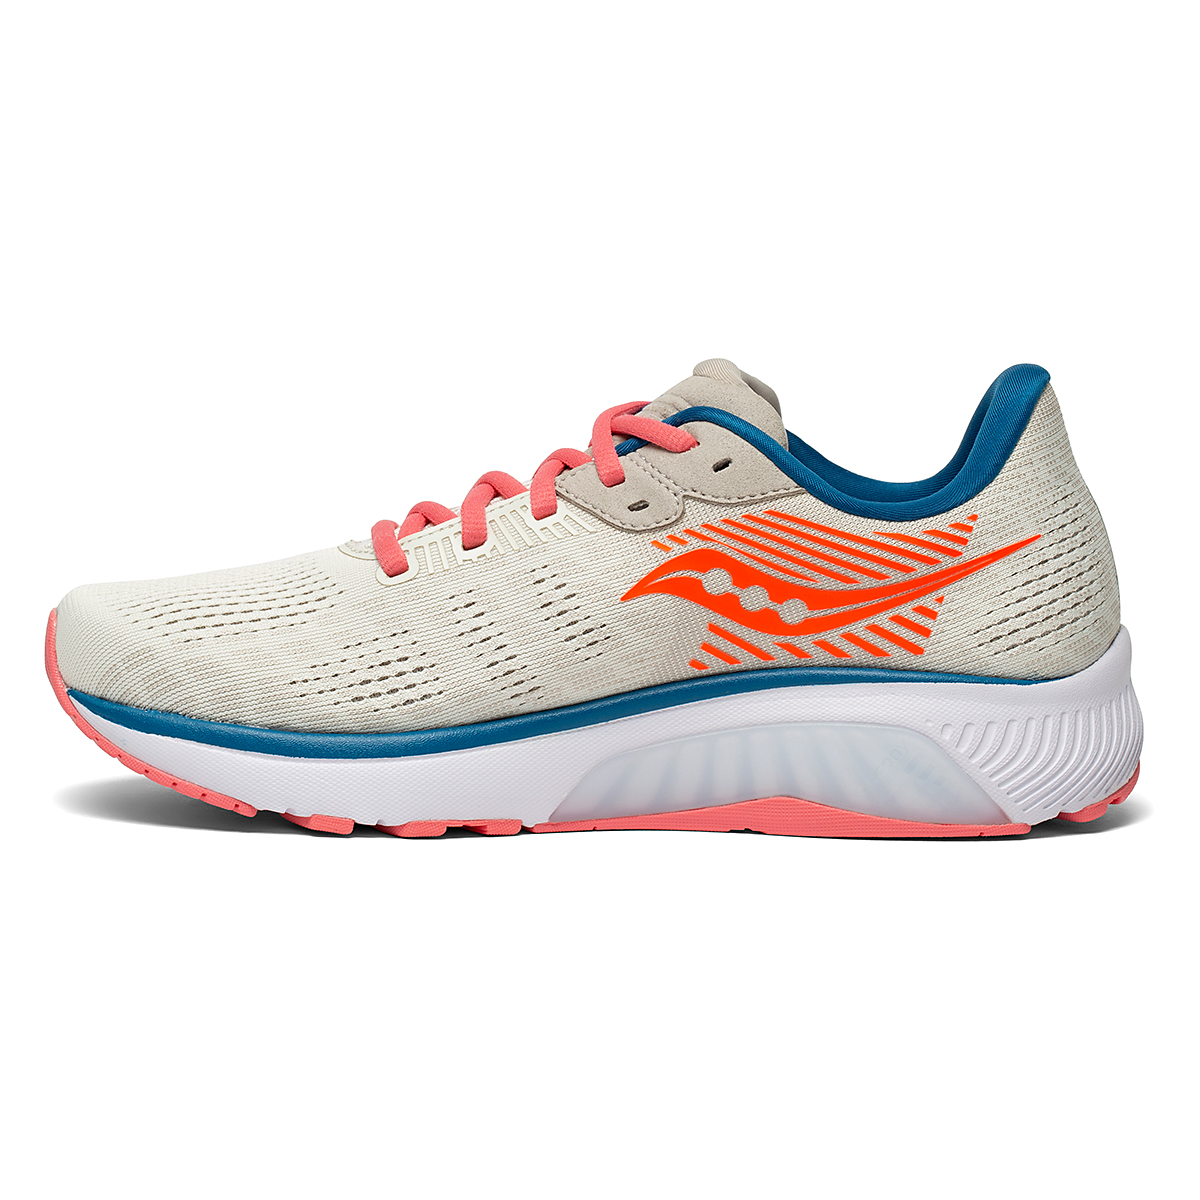 Women's Saucony Guide 14 Running Shoe, , large, image 2